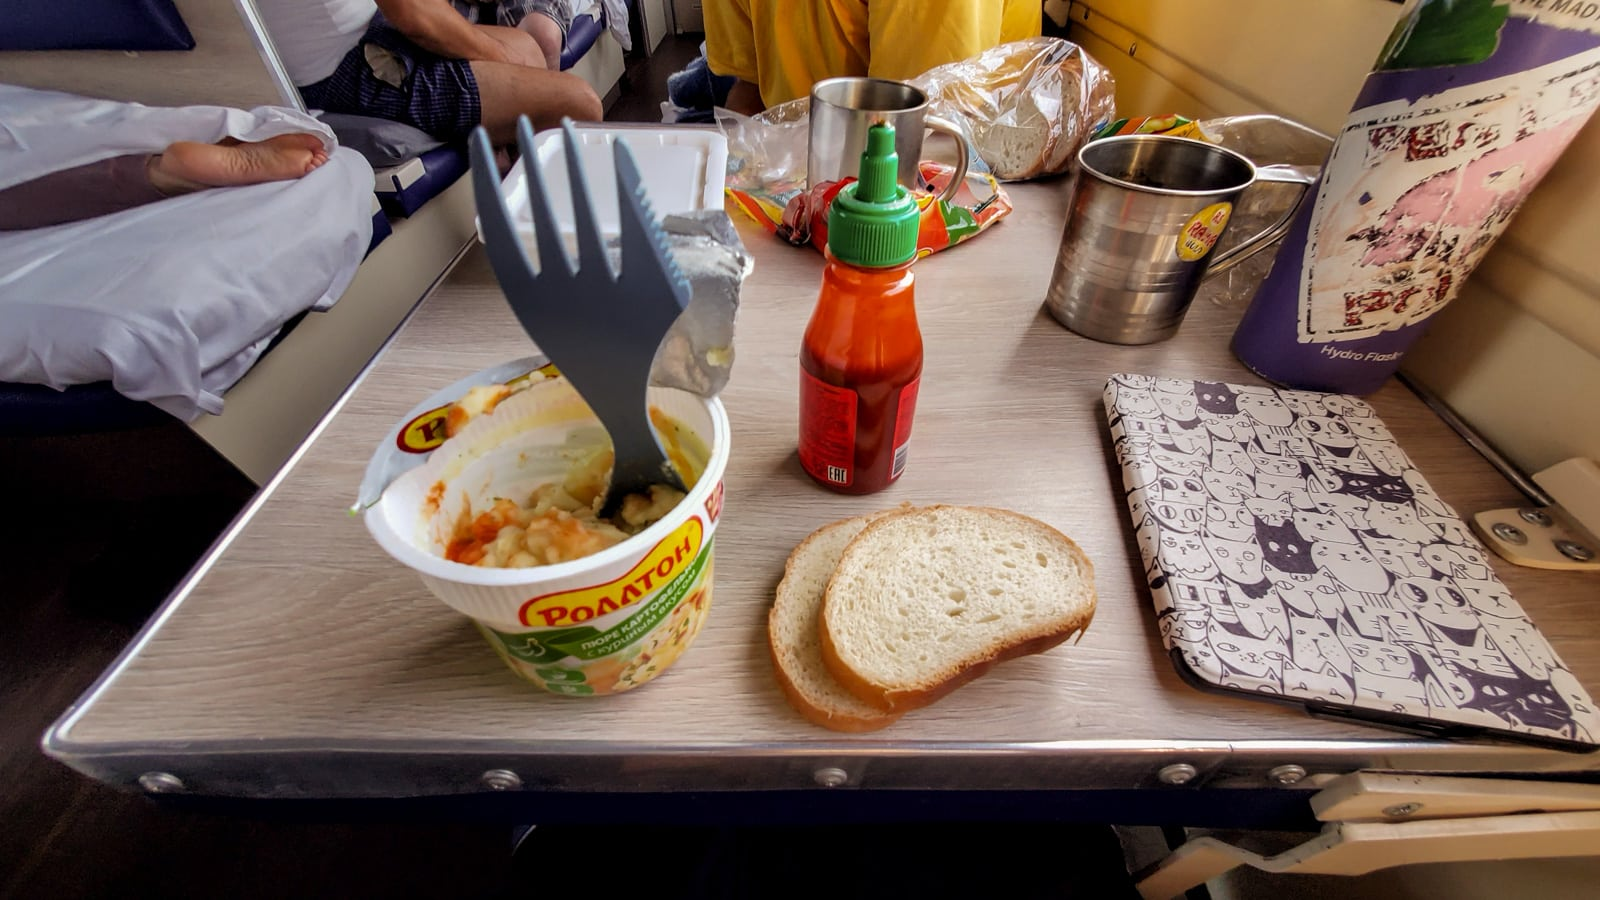 Instant mashed potatoes on Trans-Siberian train in Russia